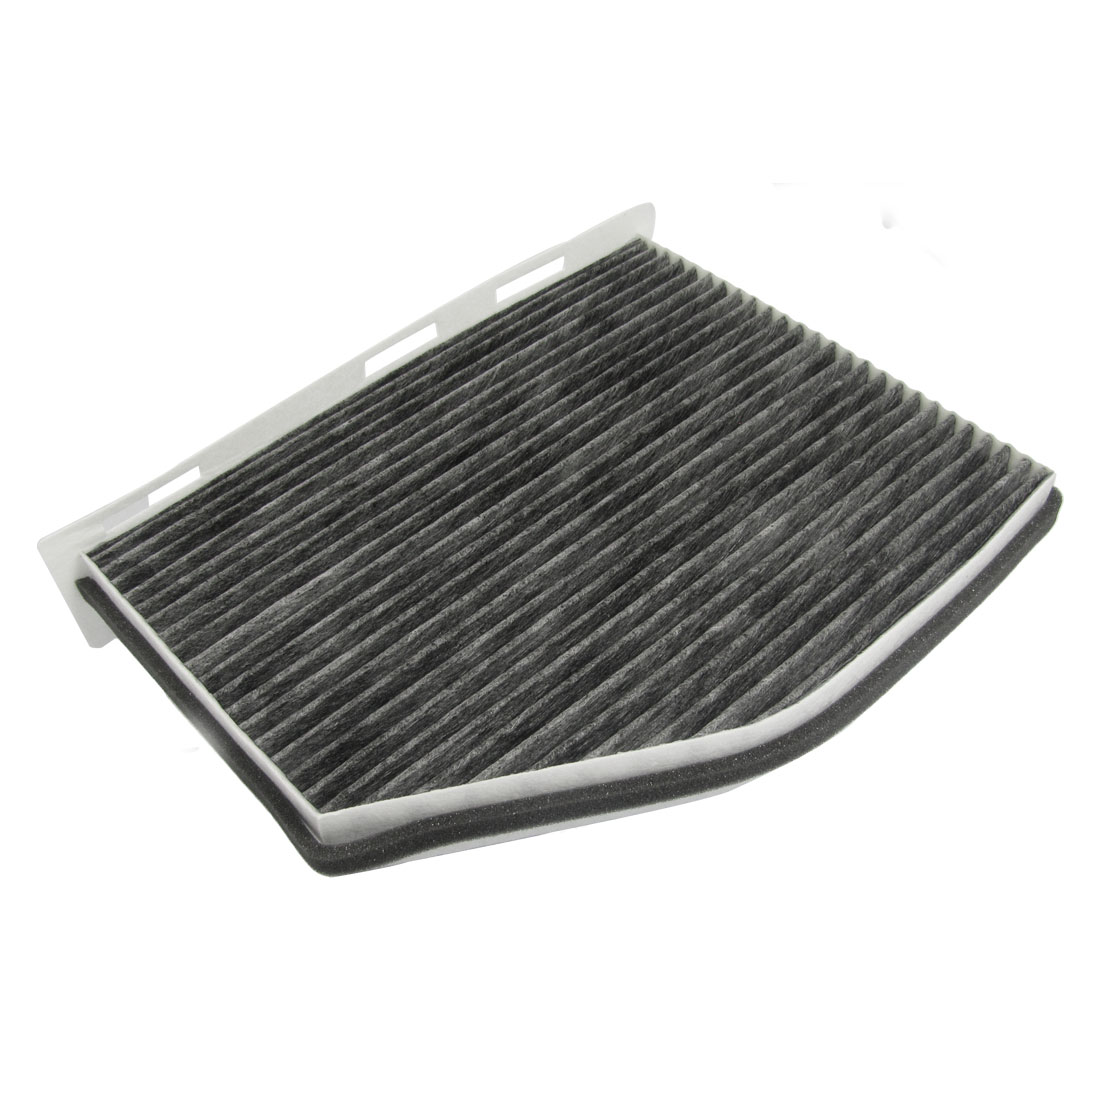 Black White Active Carbon Fiber A/C Cabin Air Filter for AUDI A3 II